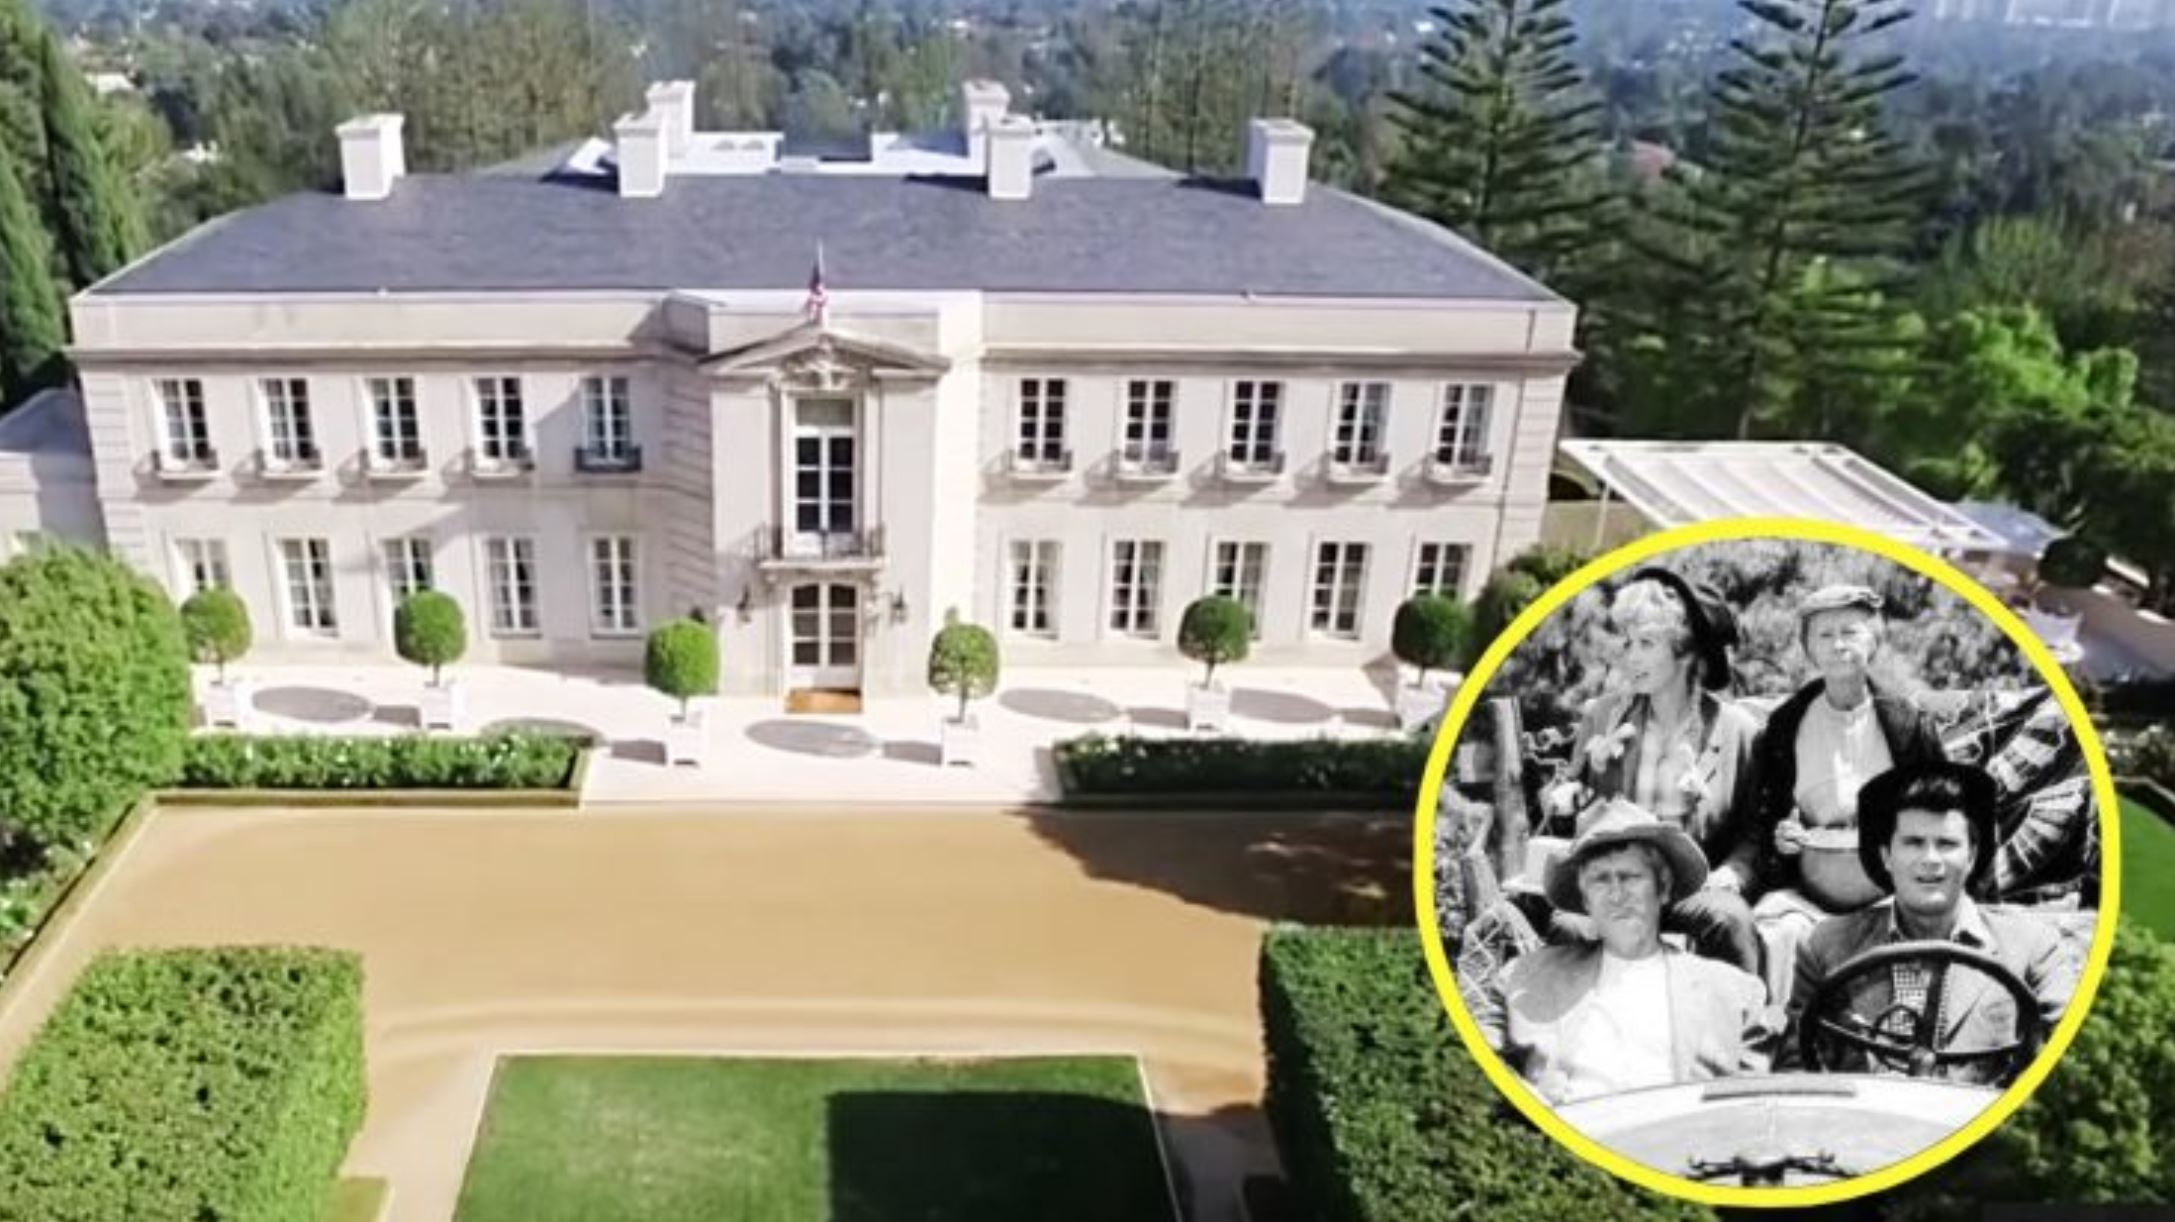 Top 5 Sales from the prior decade - Beverly Hillbillies mansion sale Hoey Team eXp Realty